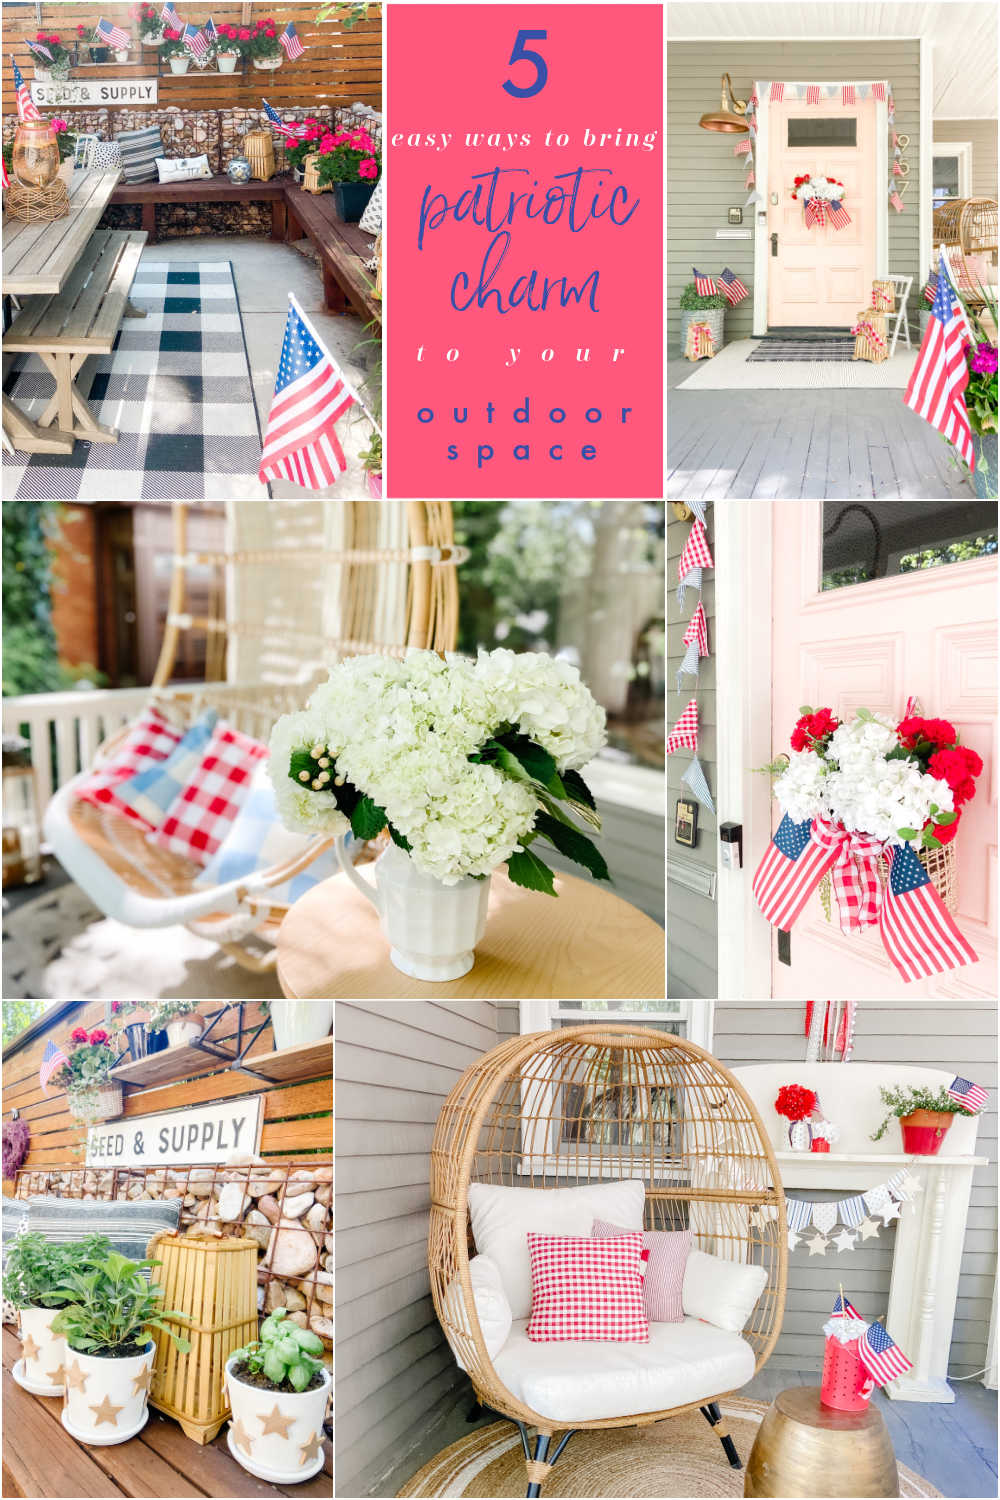 Easy Ways to Add Patriotic Charm to Your Outdoor Spaces. Here are FIVE easy ways to add red white + blue summer charm to your porch or patio!